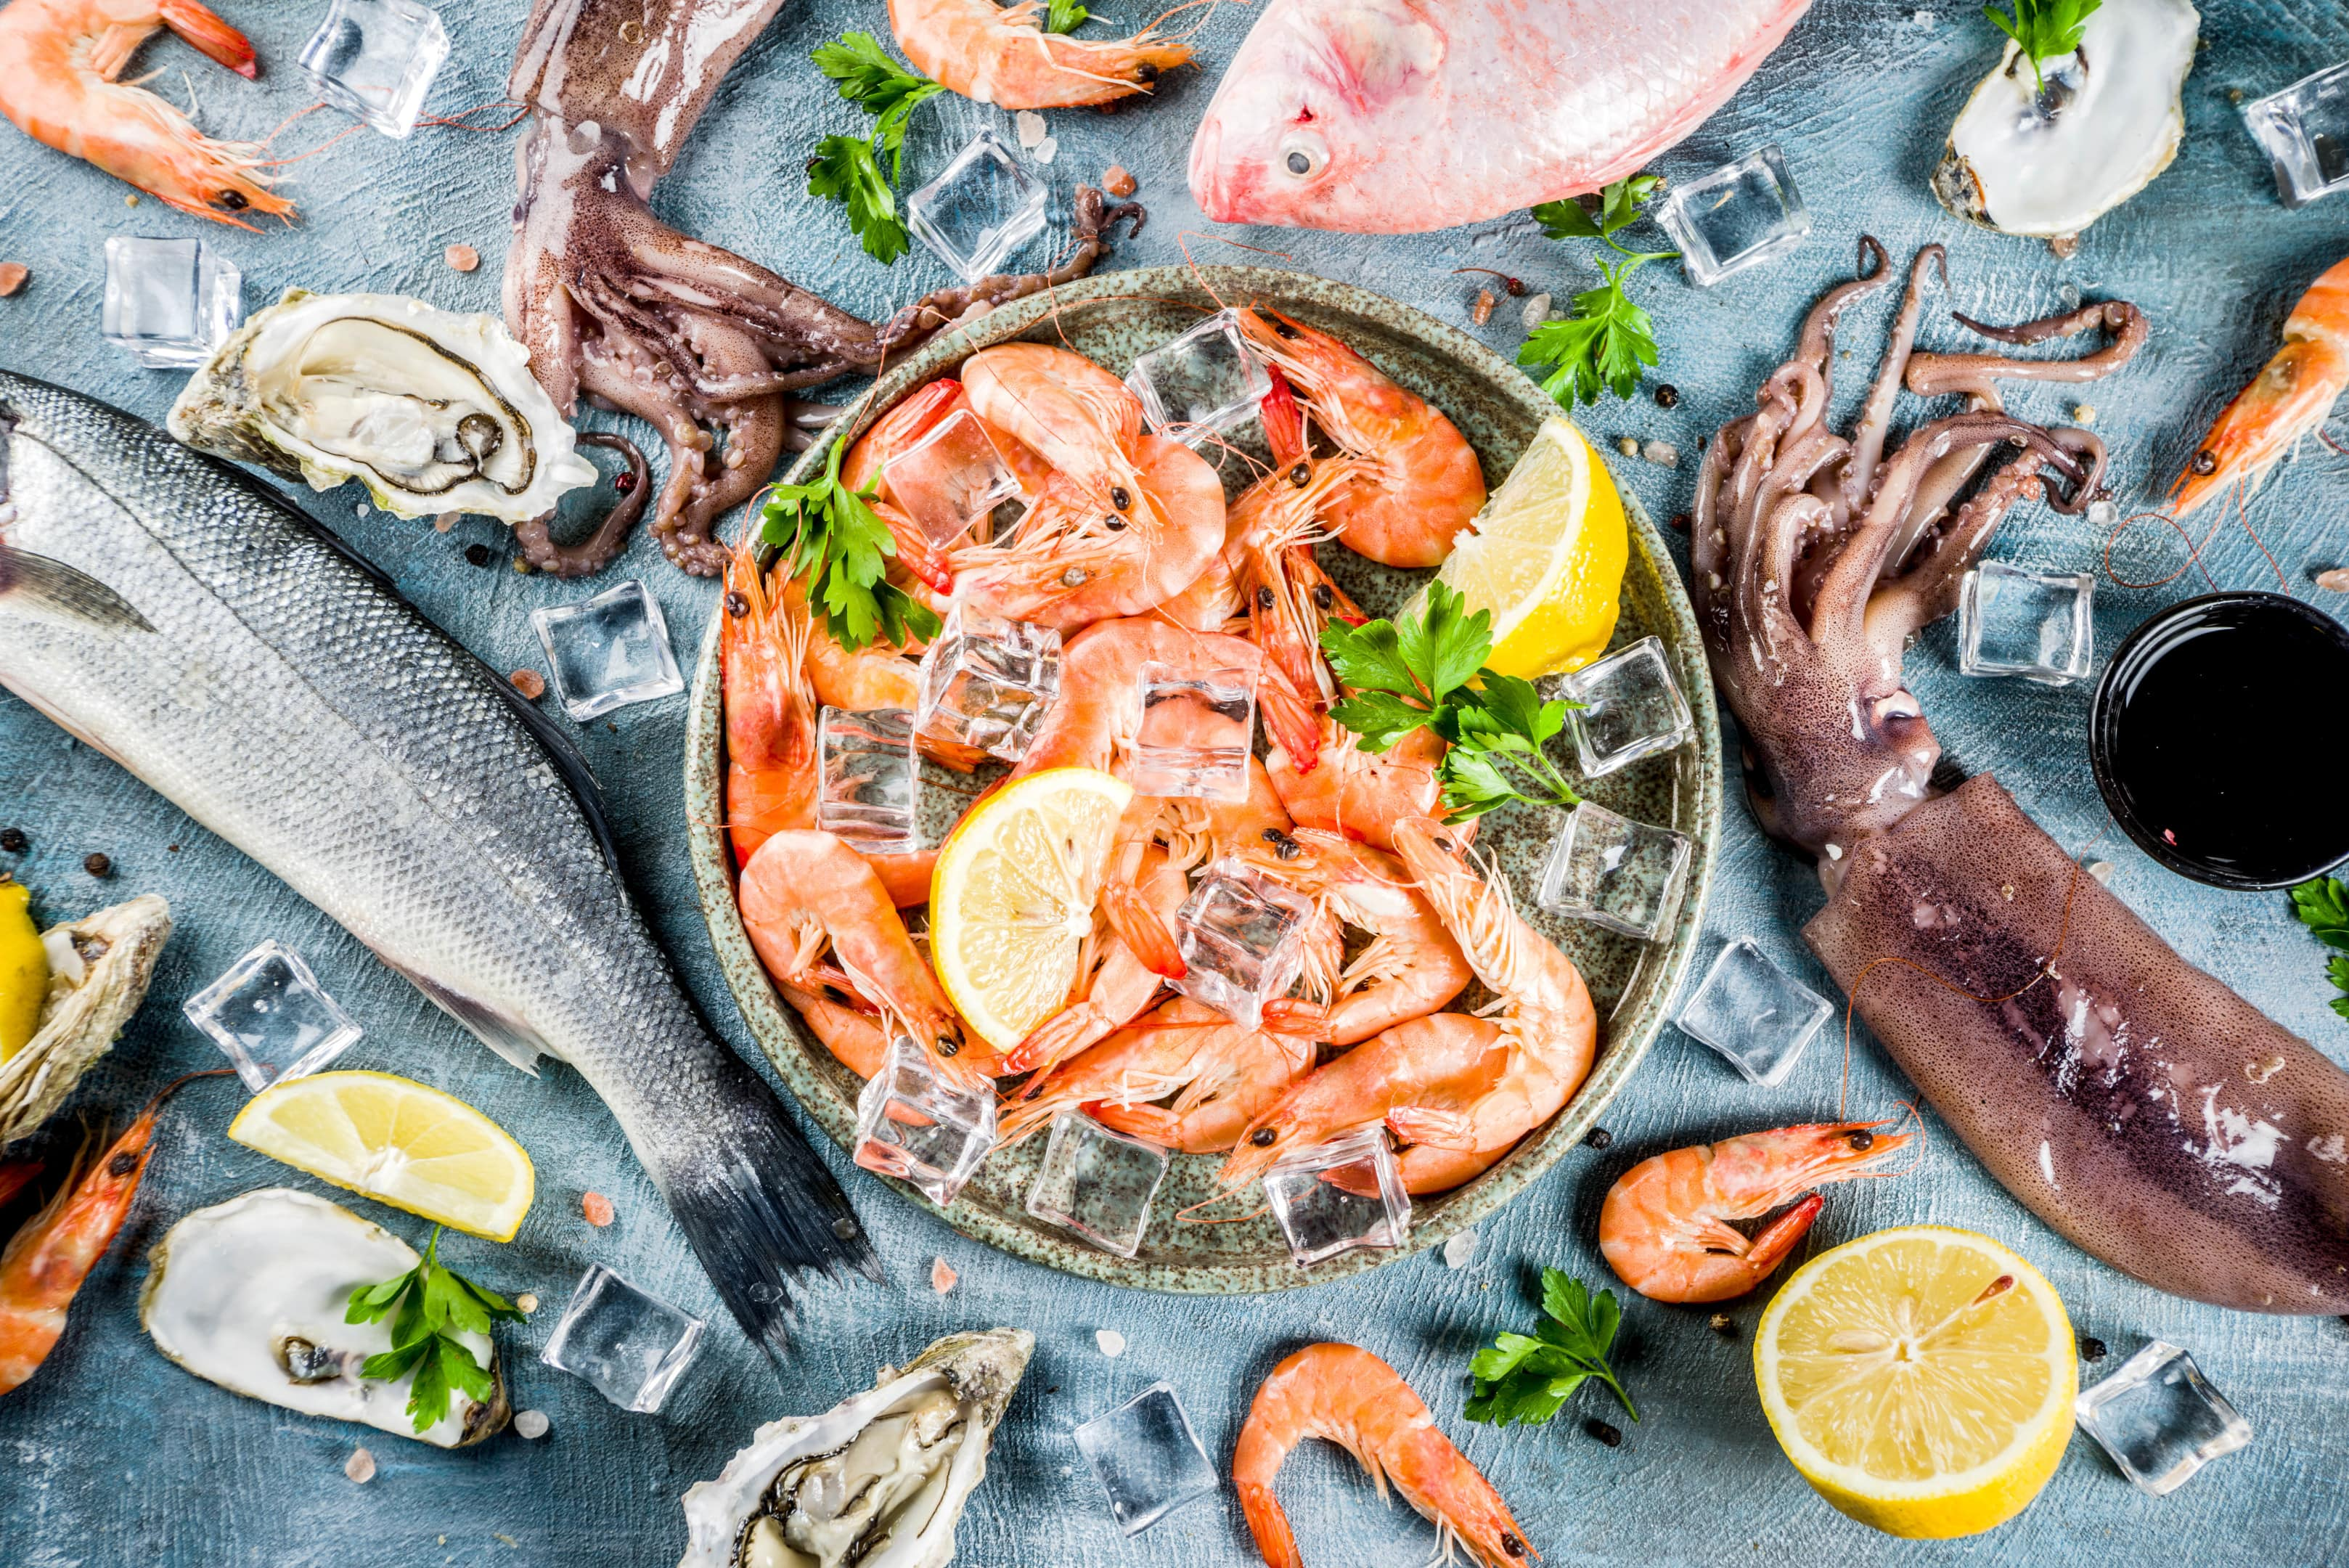 Fresh raw seafood squid shrimp oyster mussels and fish on blue background